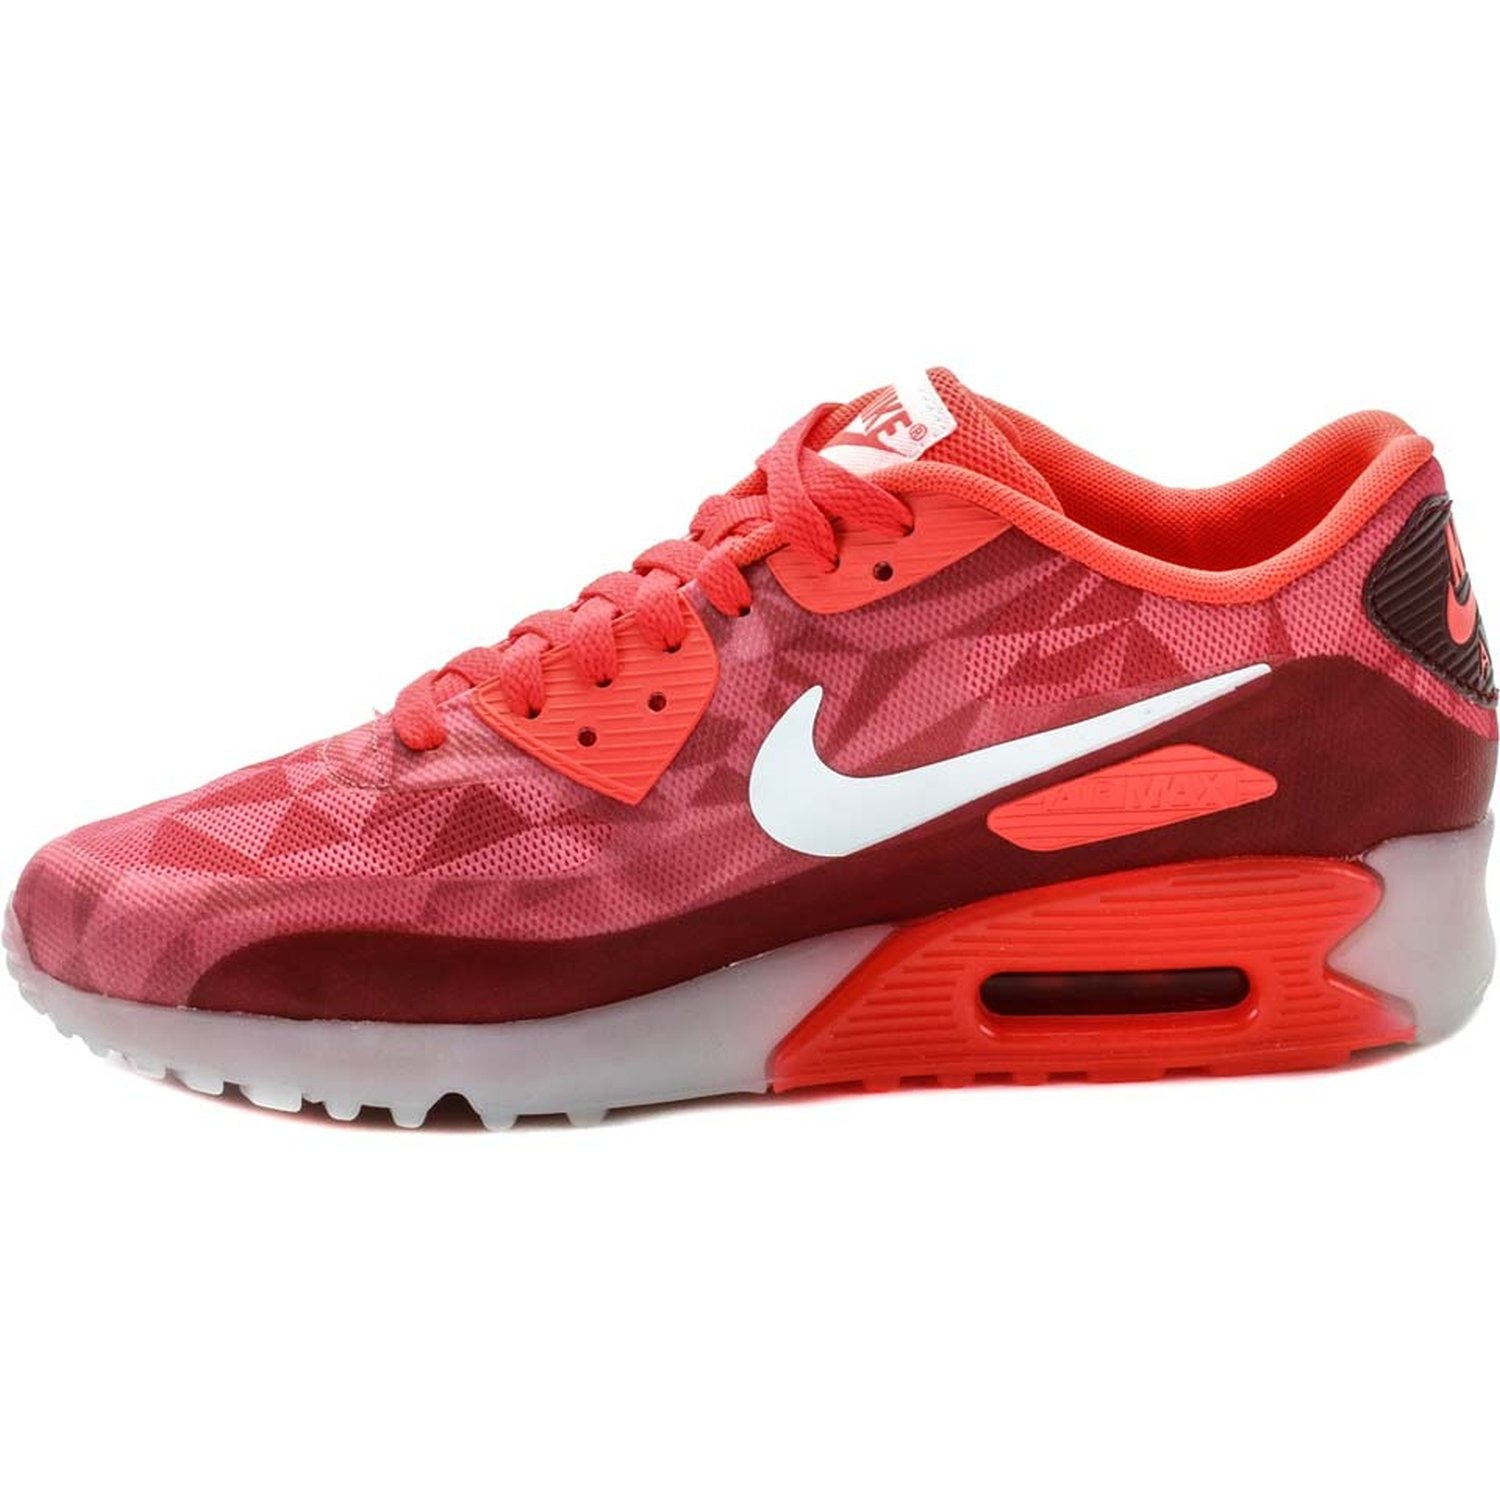 d64e83a1496e Amazon.com  Nike Mens Air Max 90 Ice Running Shoes Red 11.5  Sports    Outdoors